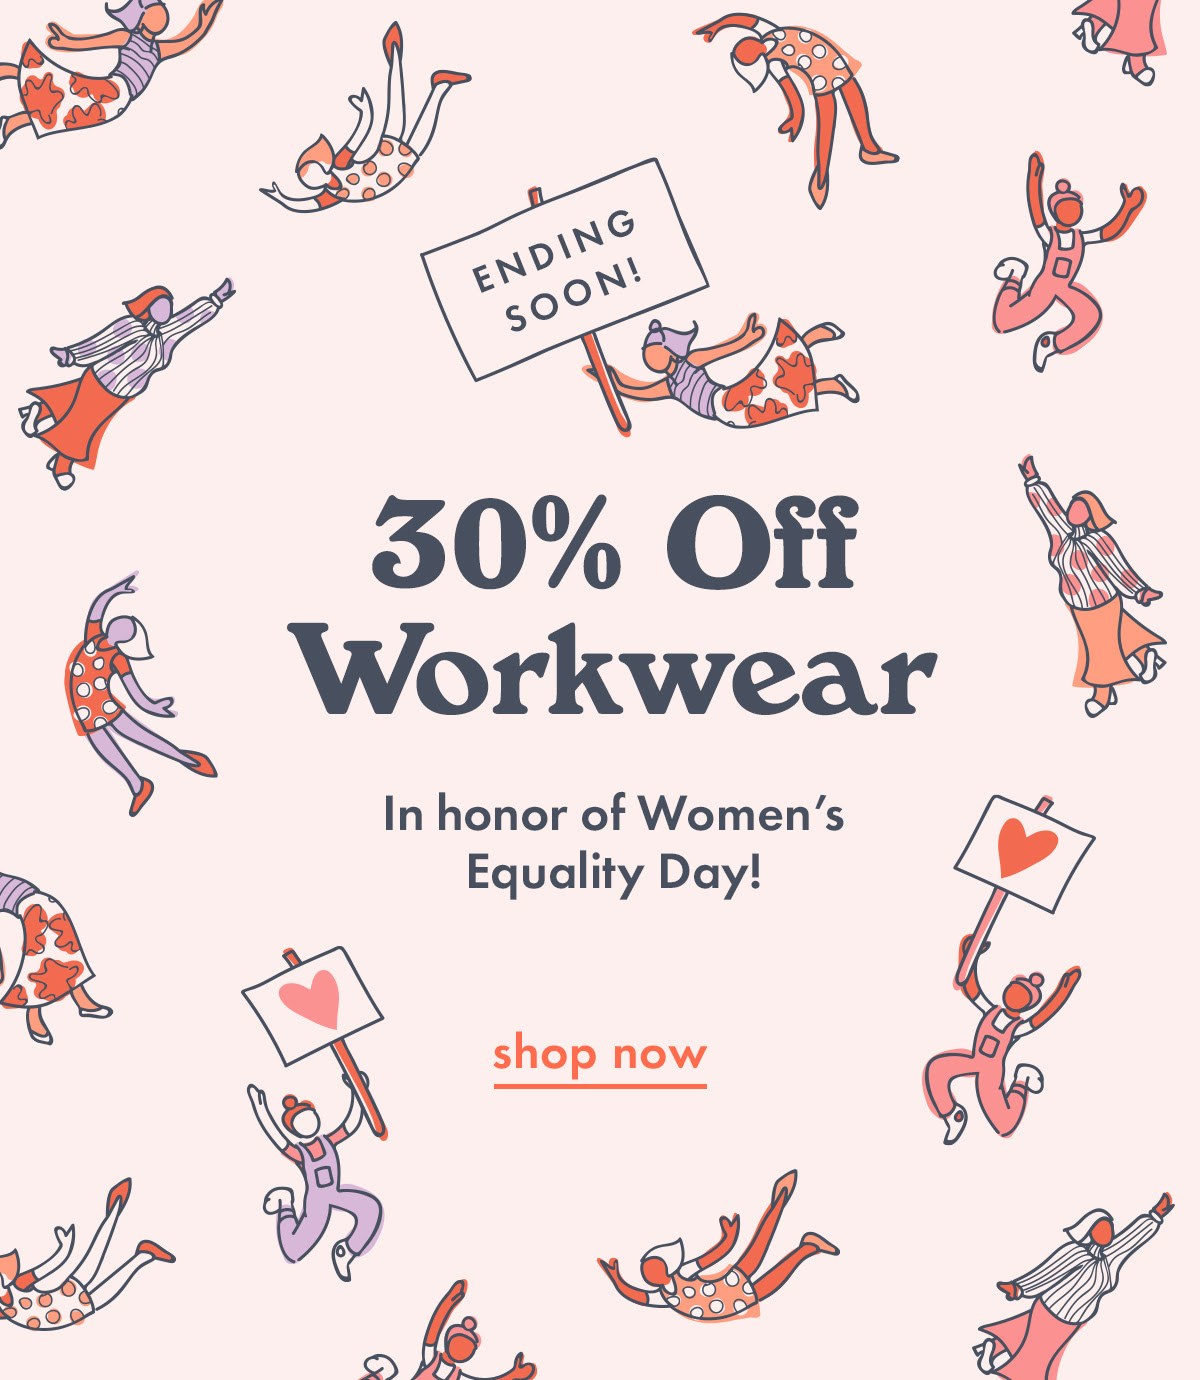 womensEquality-ending-email-1.jpg